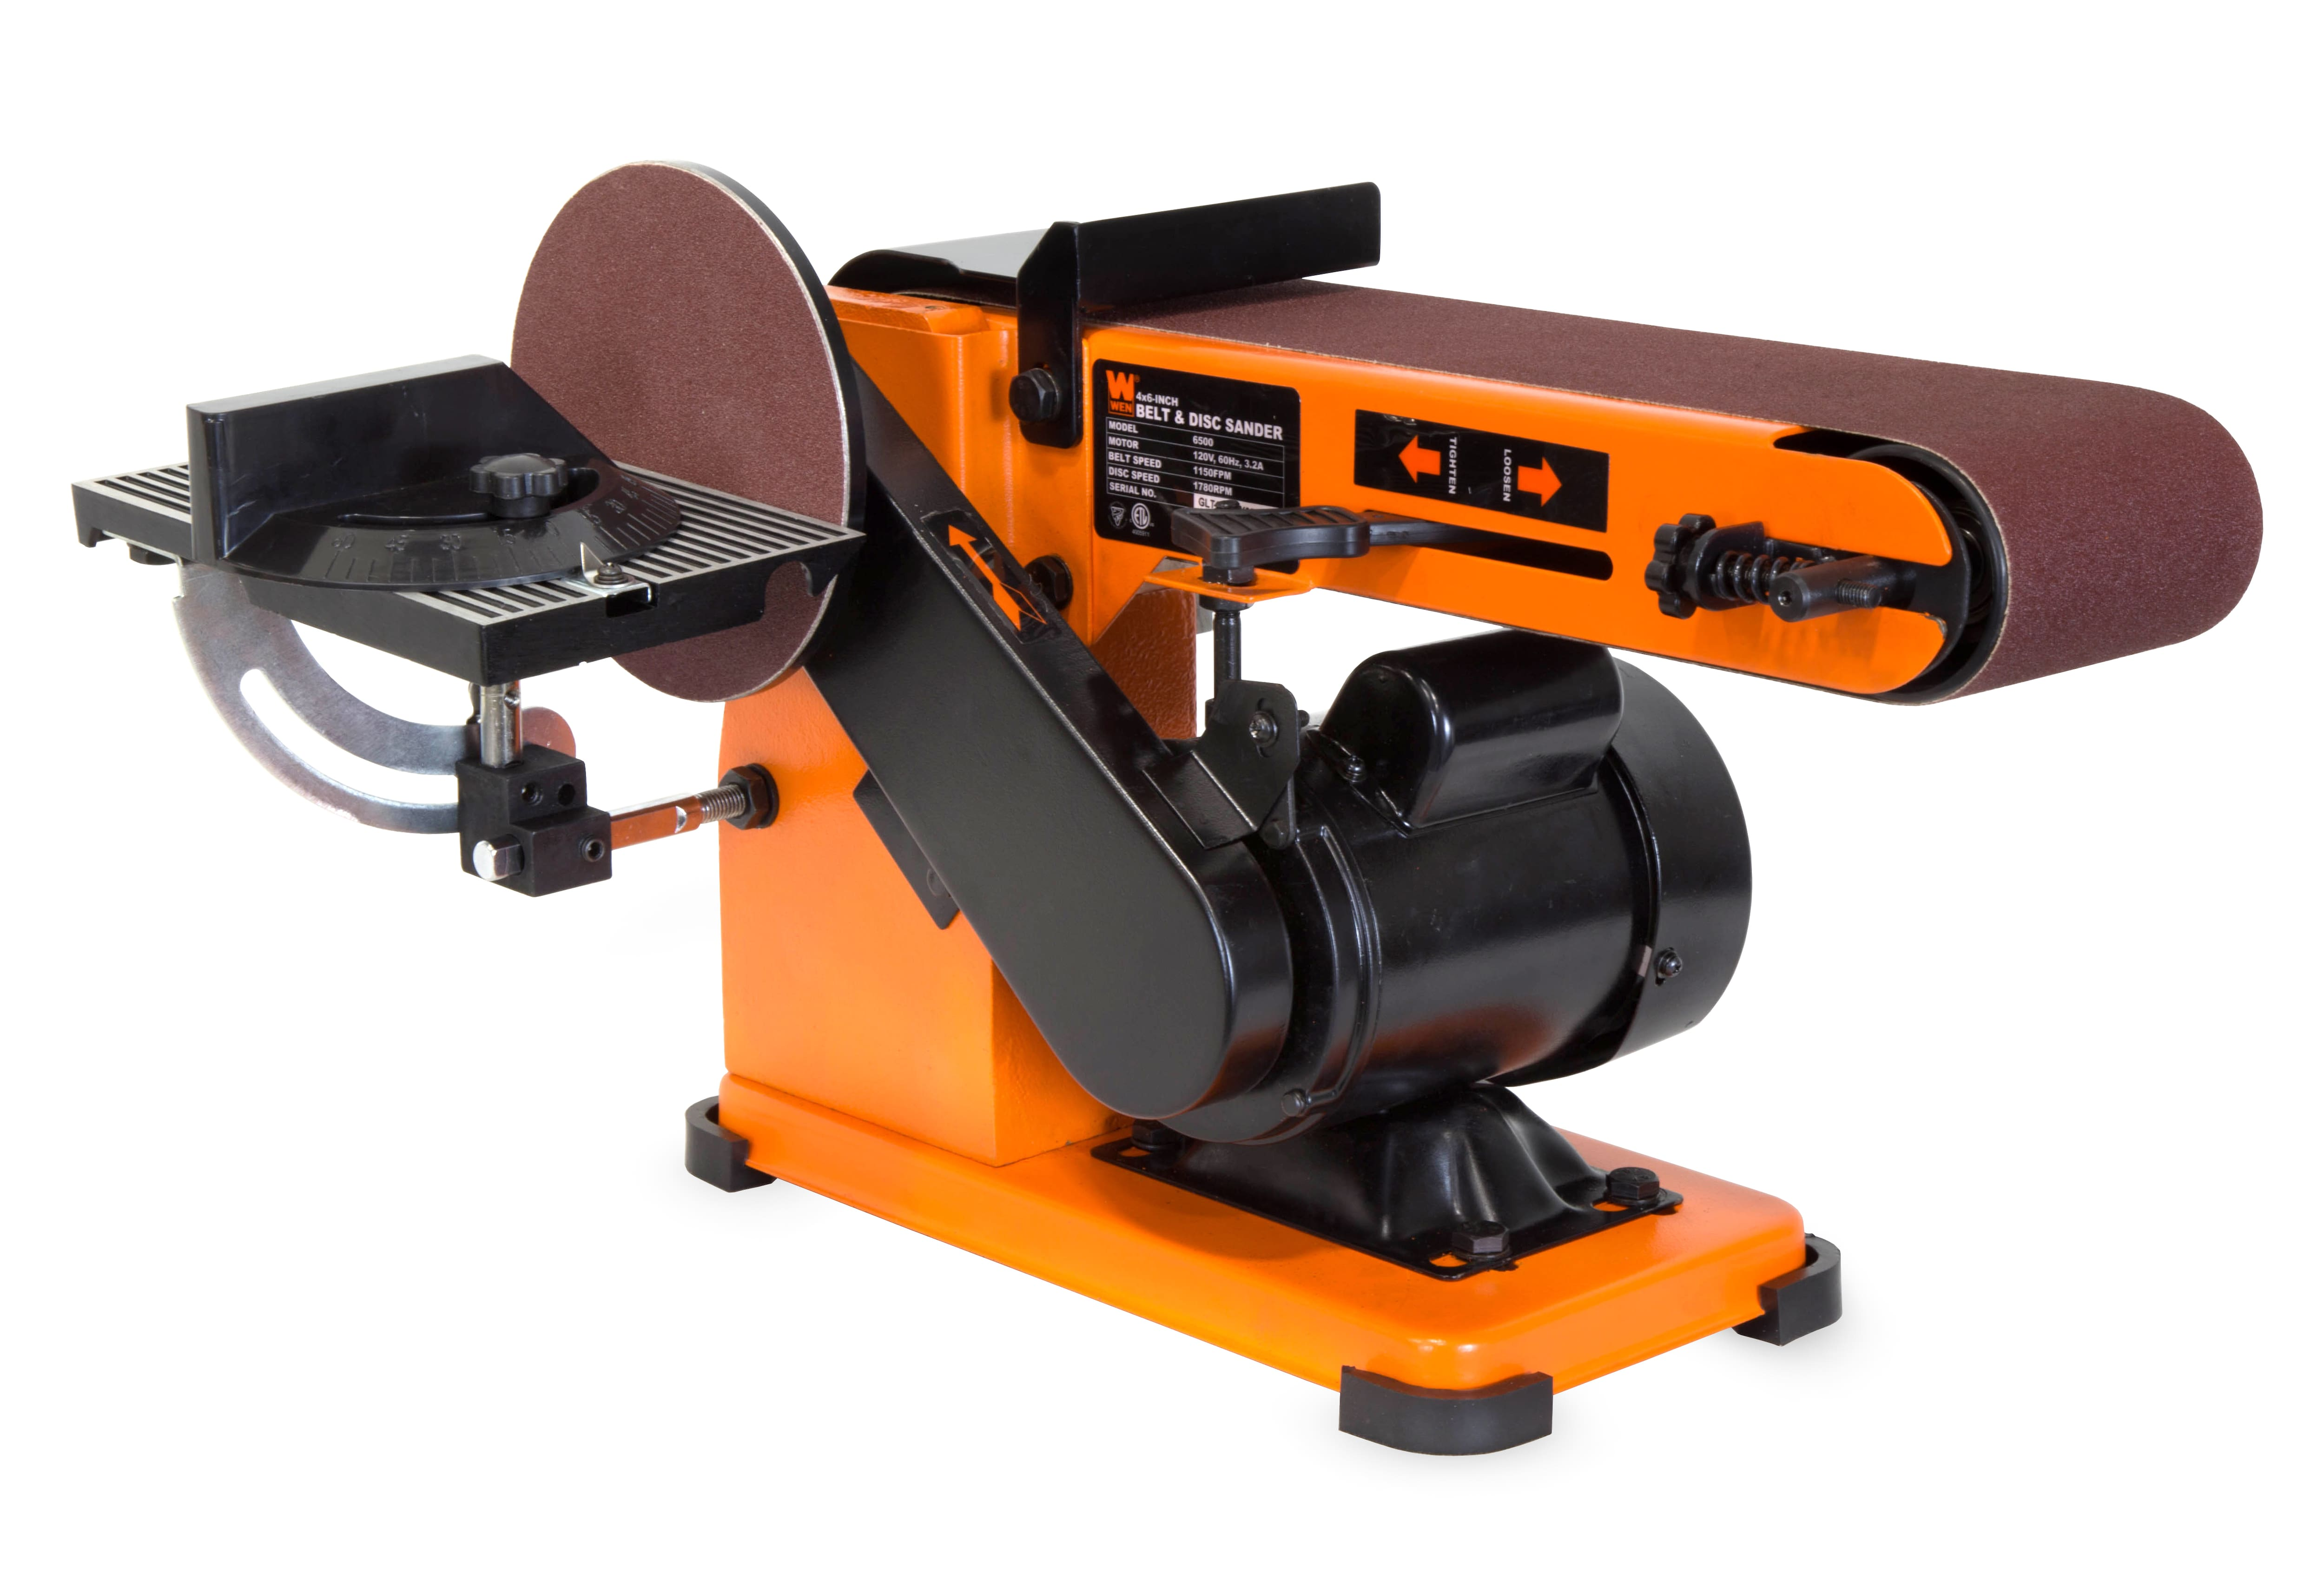 WEN Drill Press, Band Saw, Sanders 50-80% off on clearance @ Walmart.com